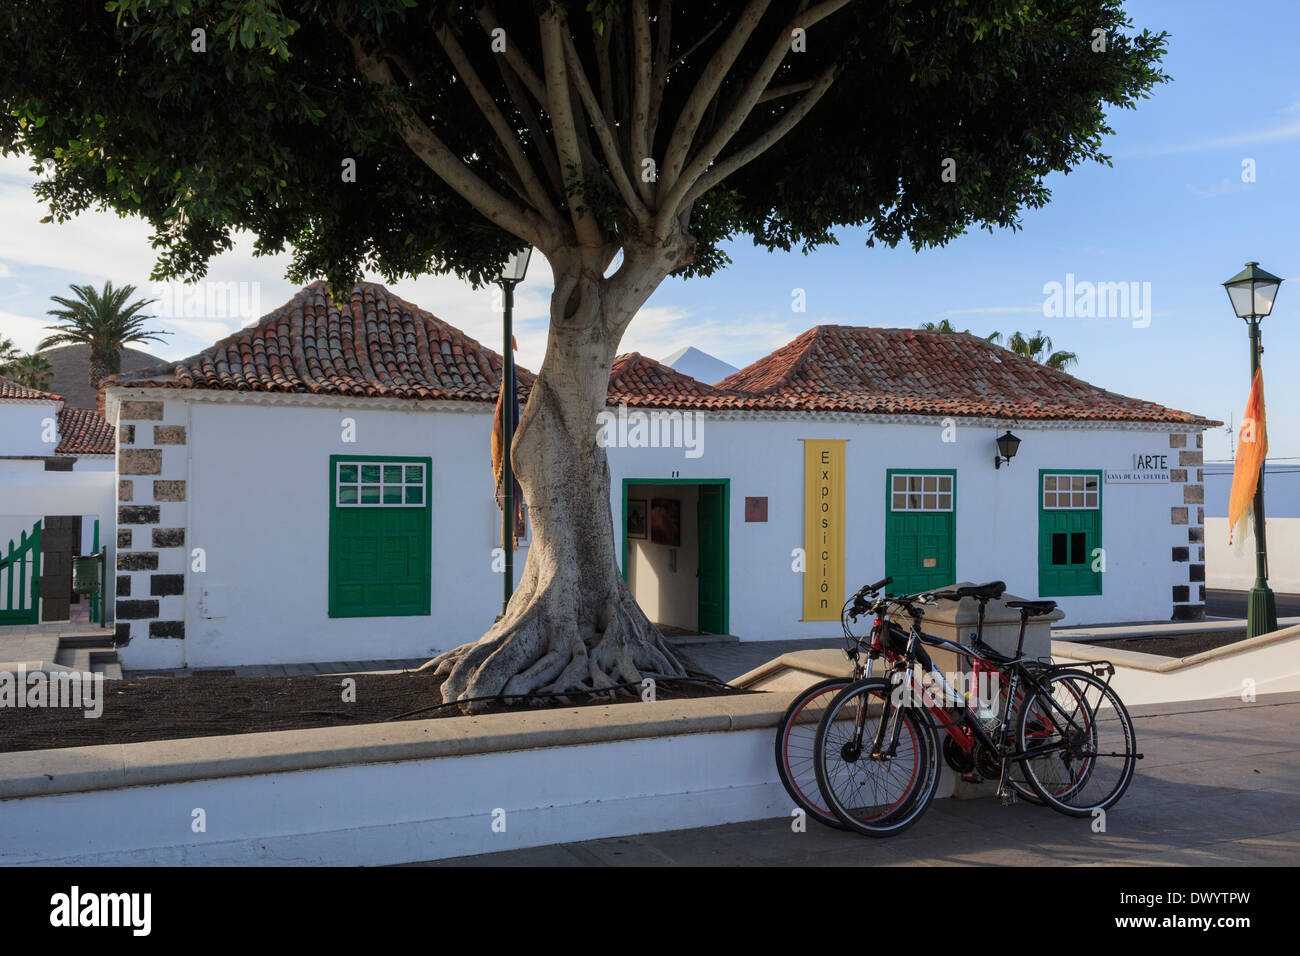 Casa de la Cultura or House of Cultural Exhibitions in typical Canarian building in old town square Yaiza Lanzarote Canary Isles - Stock Image